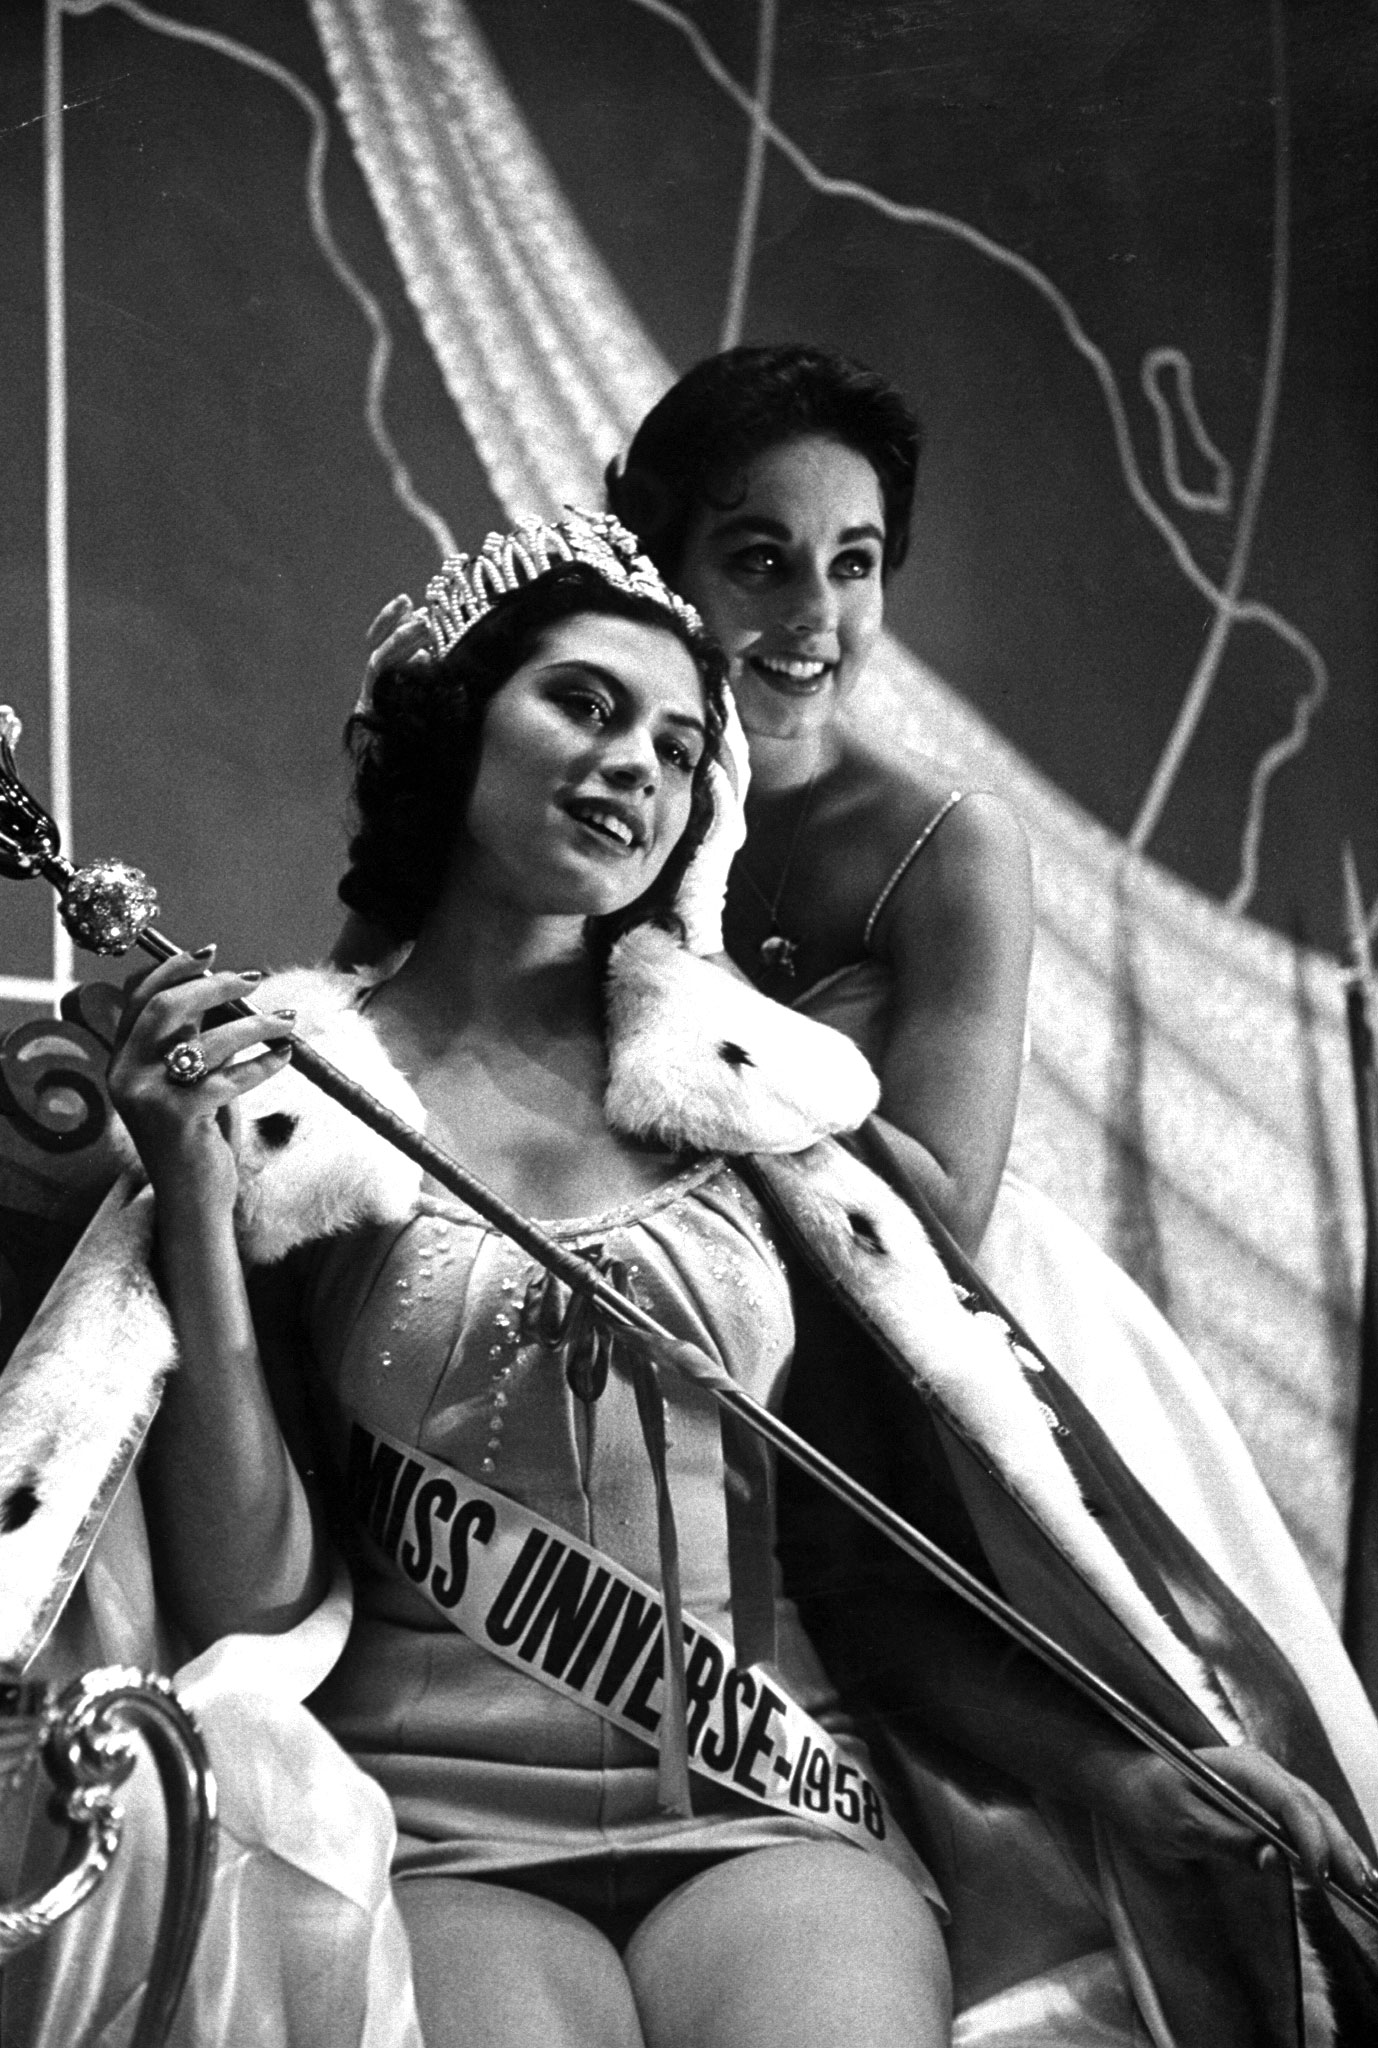 Miss Peru, Gladys Zender, winner of the 1957 Miss Universe Contest.